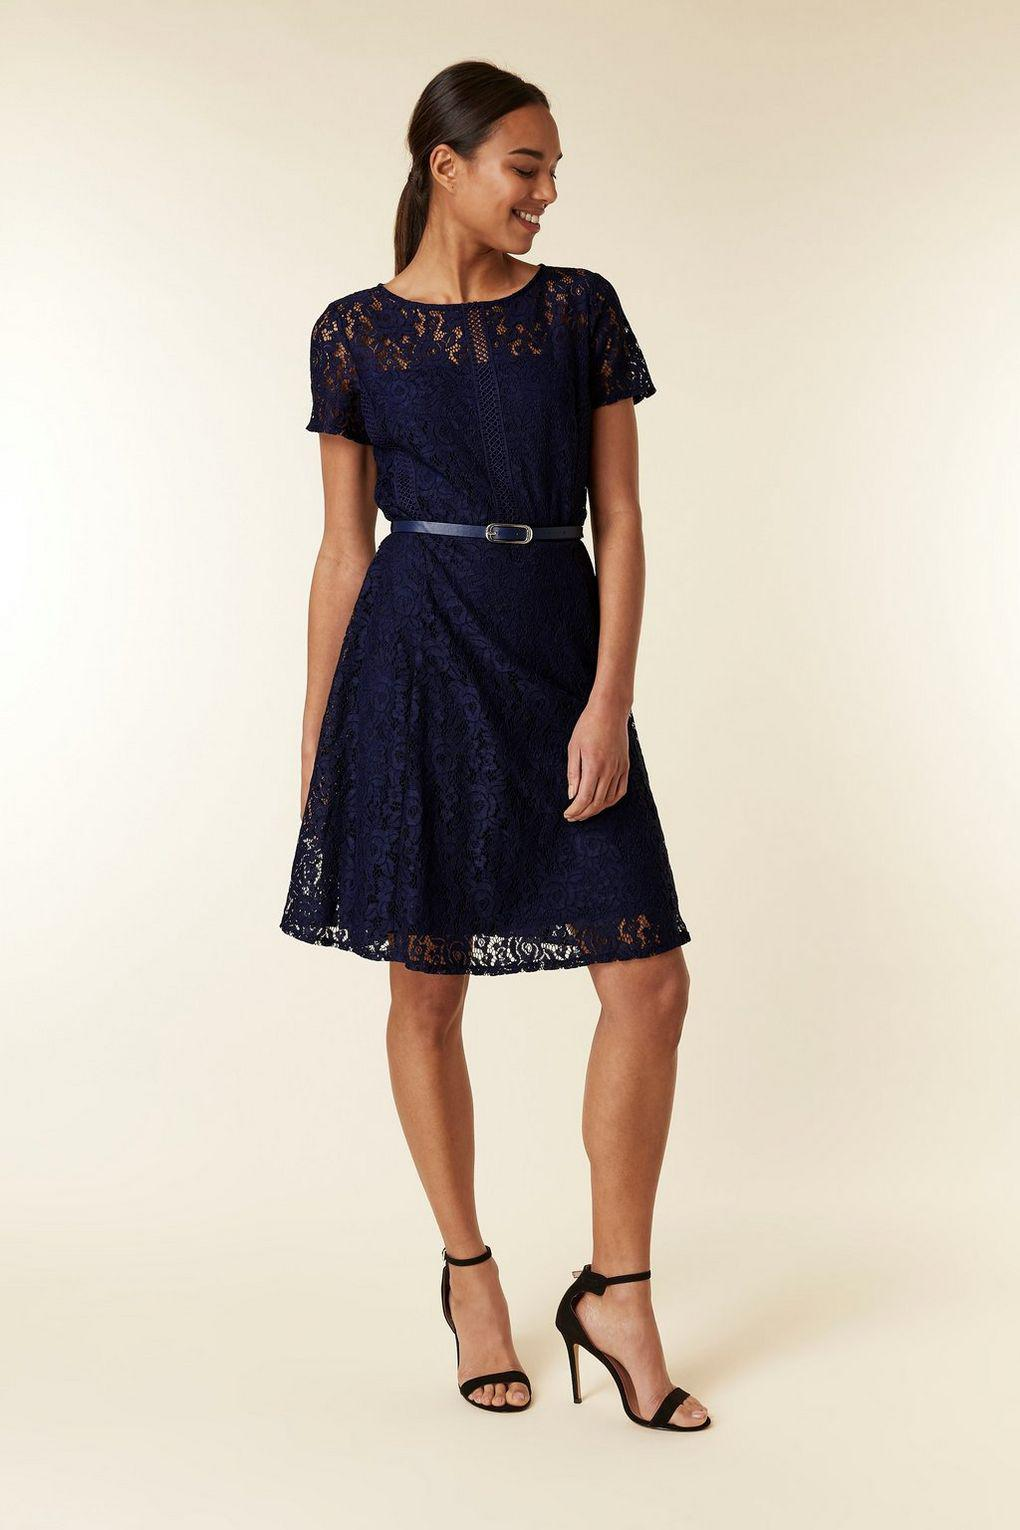 c9a237acace ... Navy Lace Belted Fit And Flare Dress - Lyst. View fullscreen